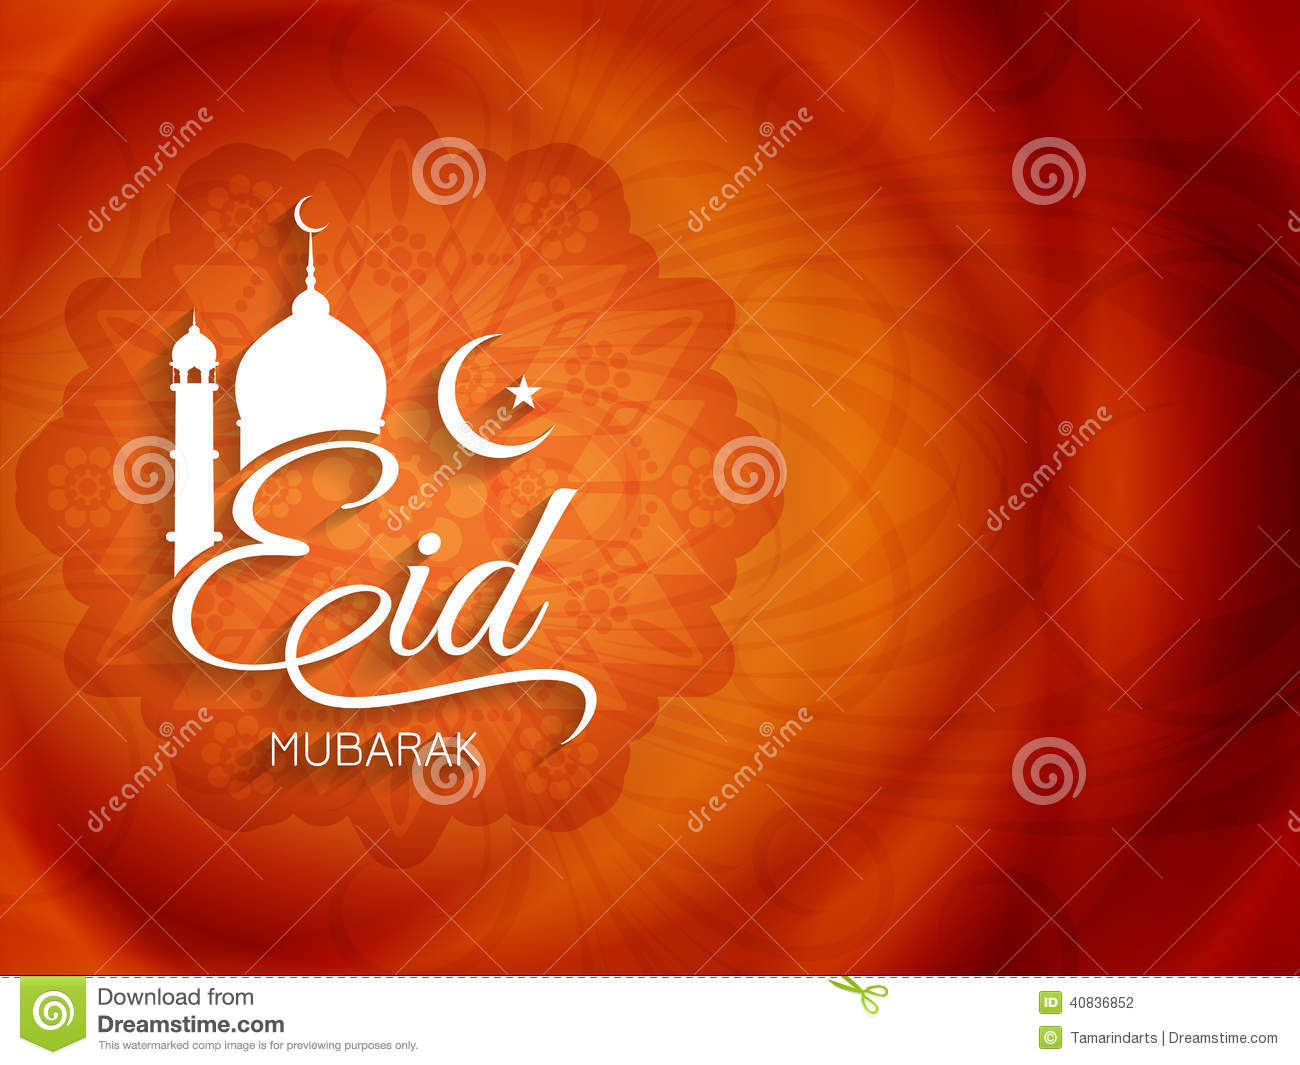 artistic eid mubarak text design background stock vector illustration of islam holiday 40836852 dreamstime com